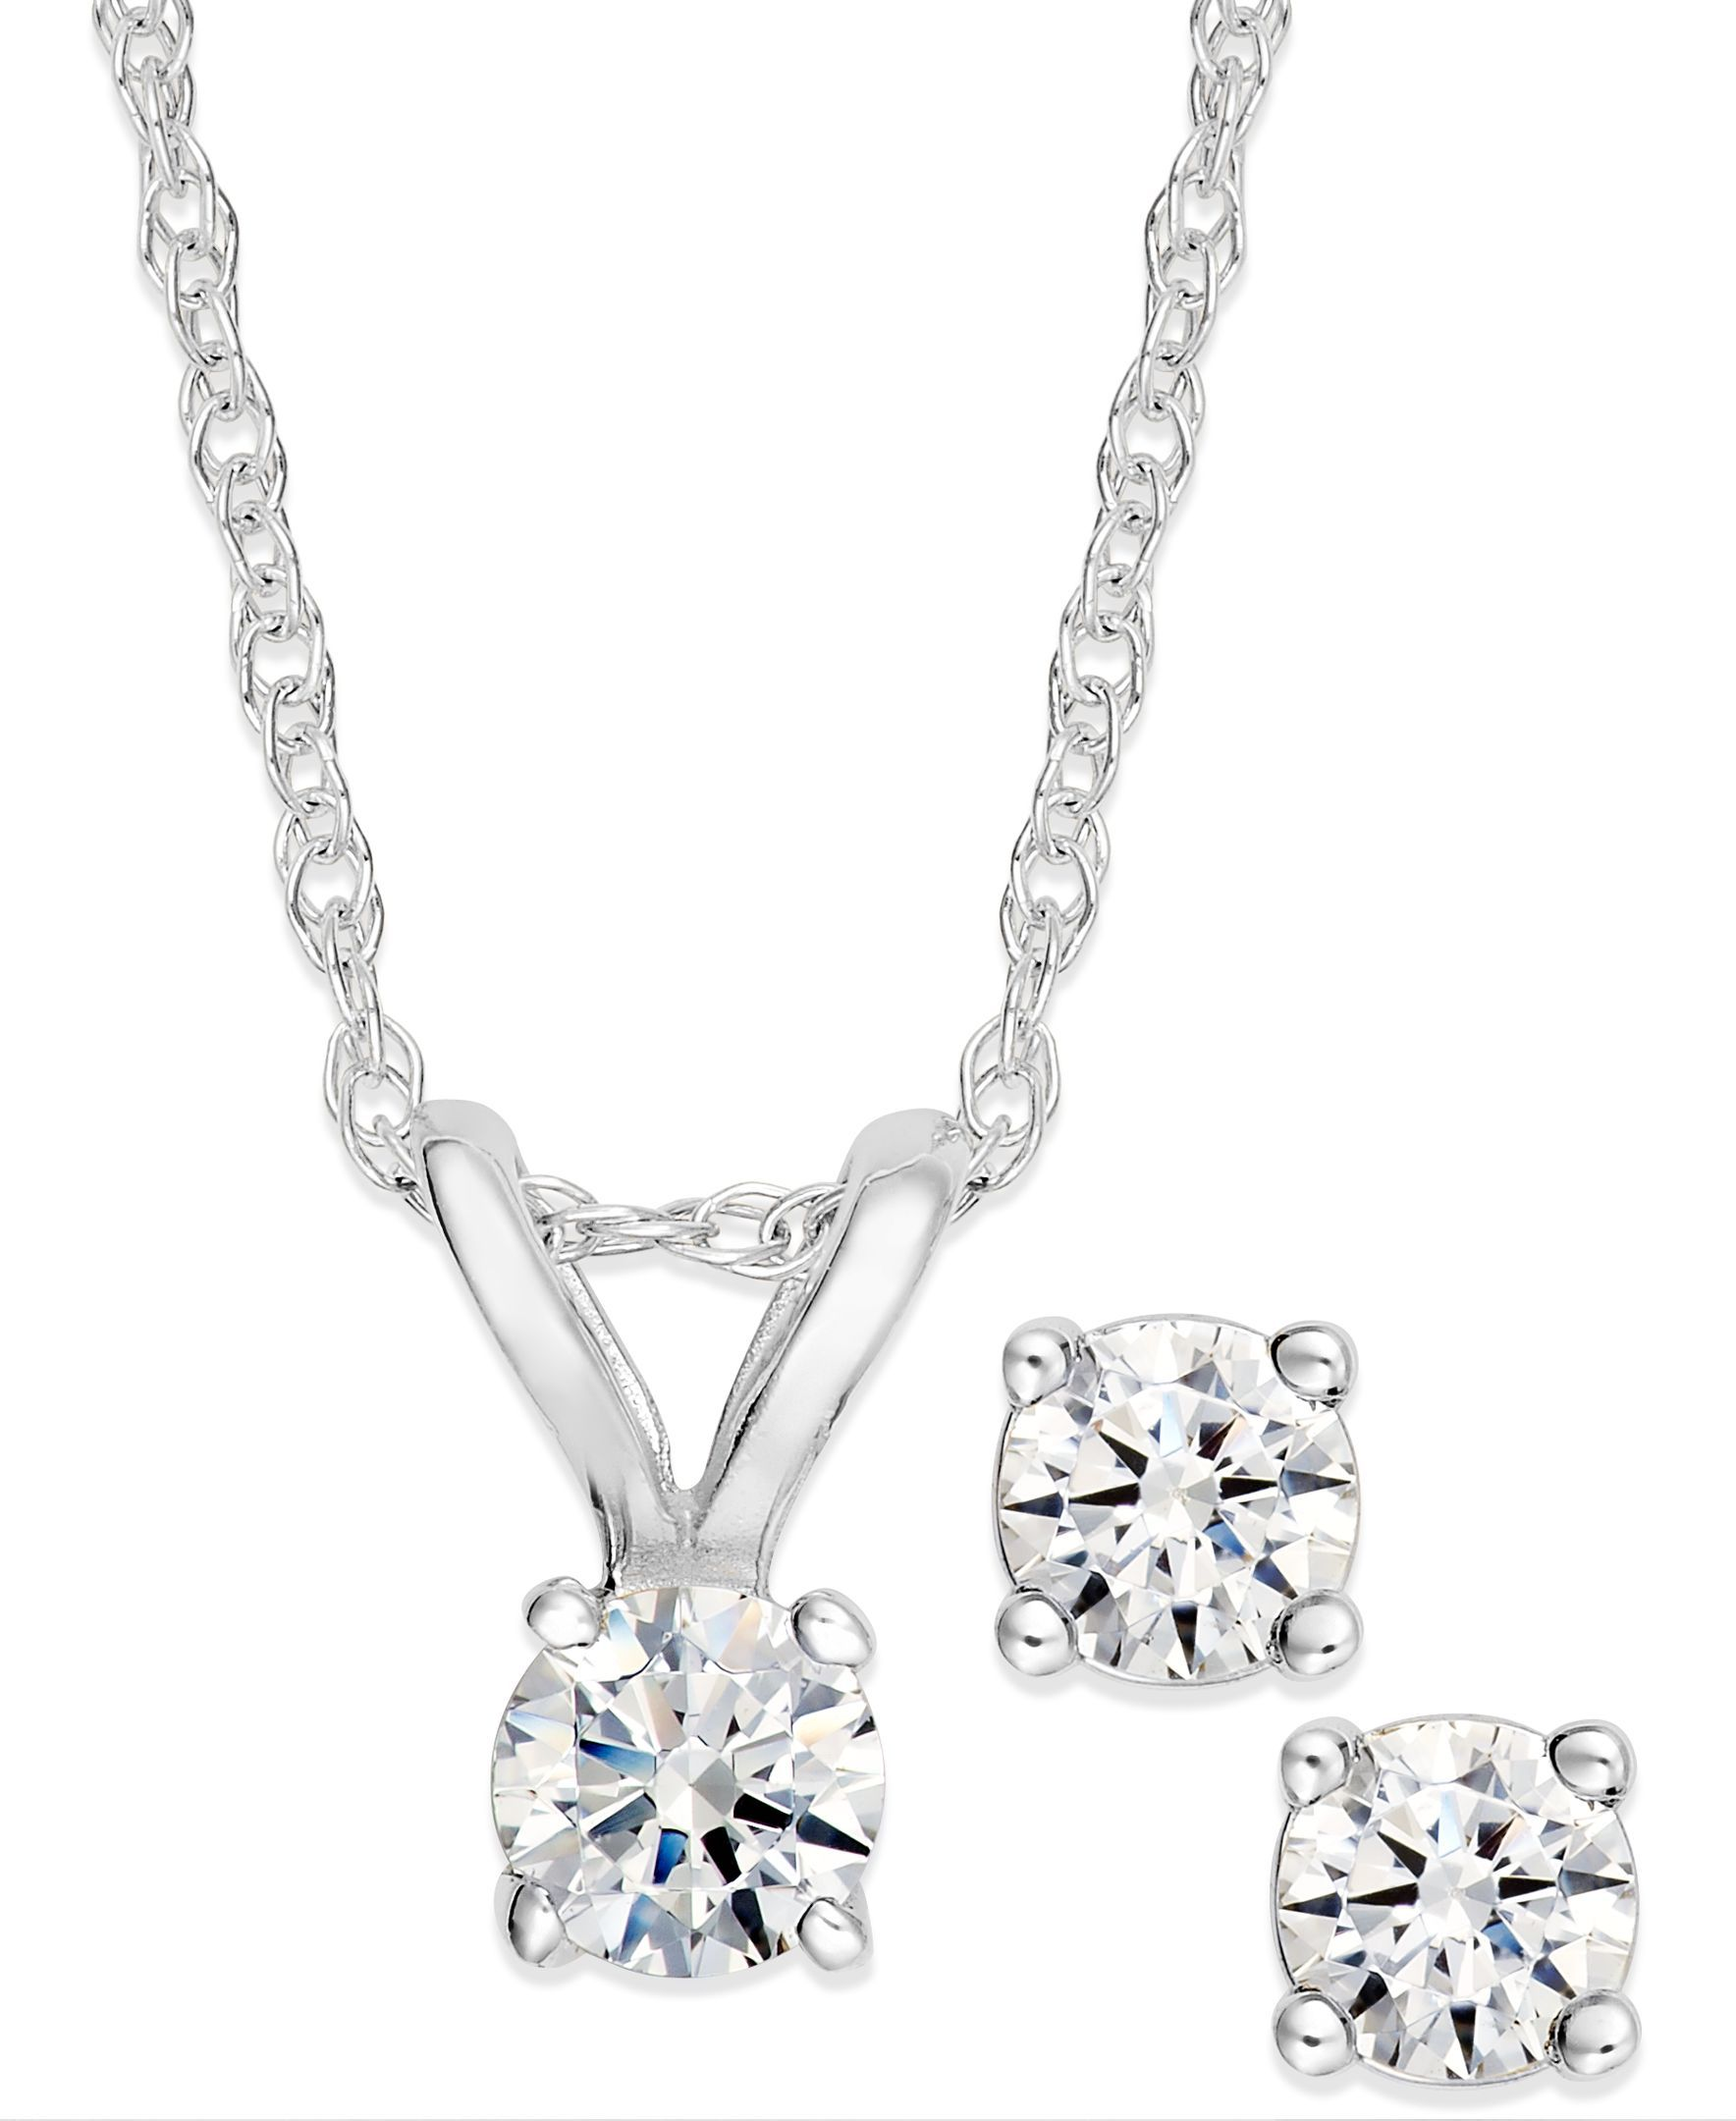 Diamond Pendant Necklace and Earrings Set in 10k White Gold (1/10 ct. t.w.)